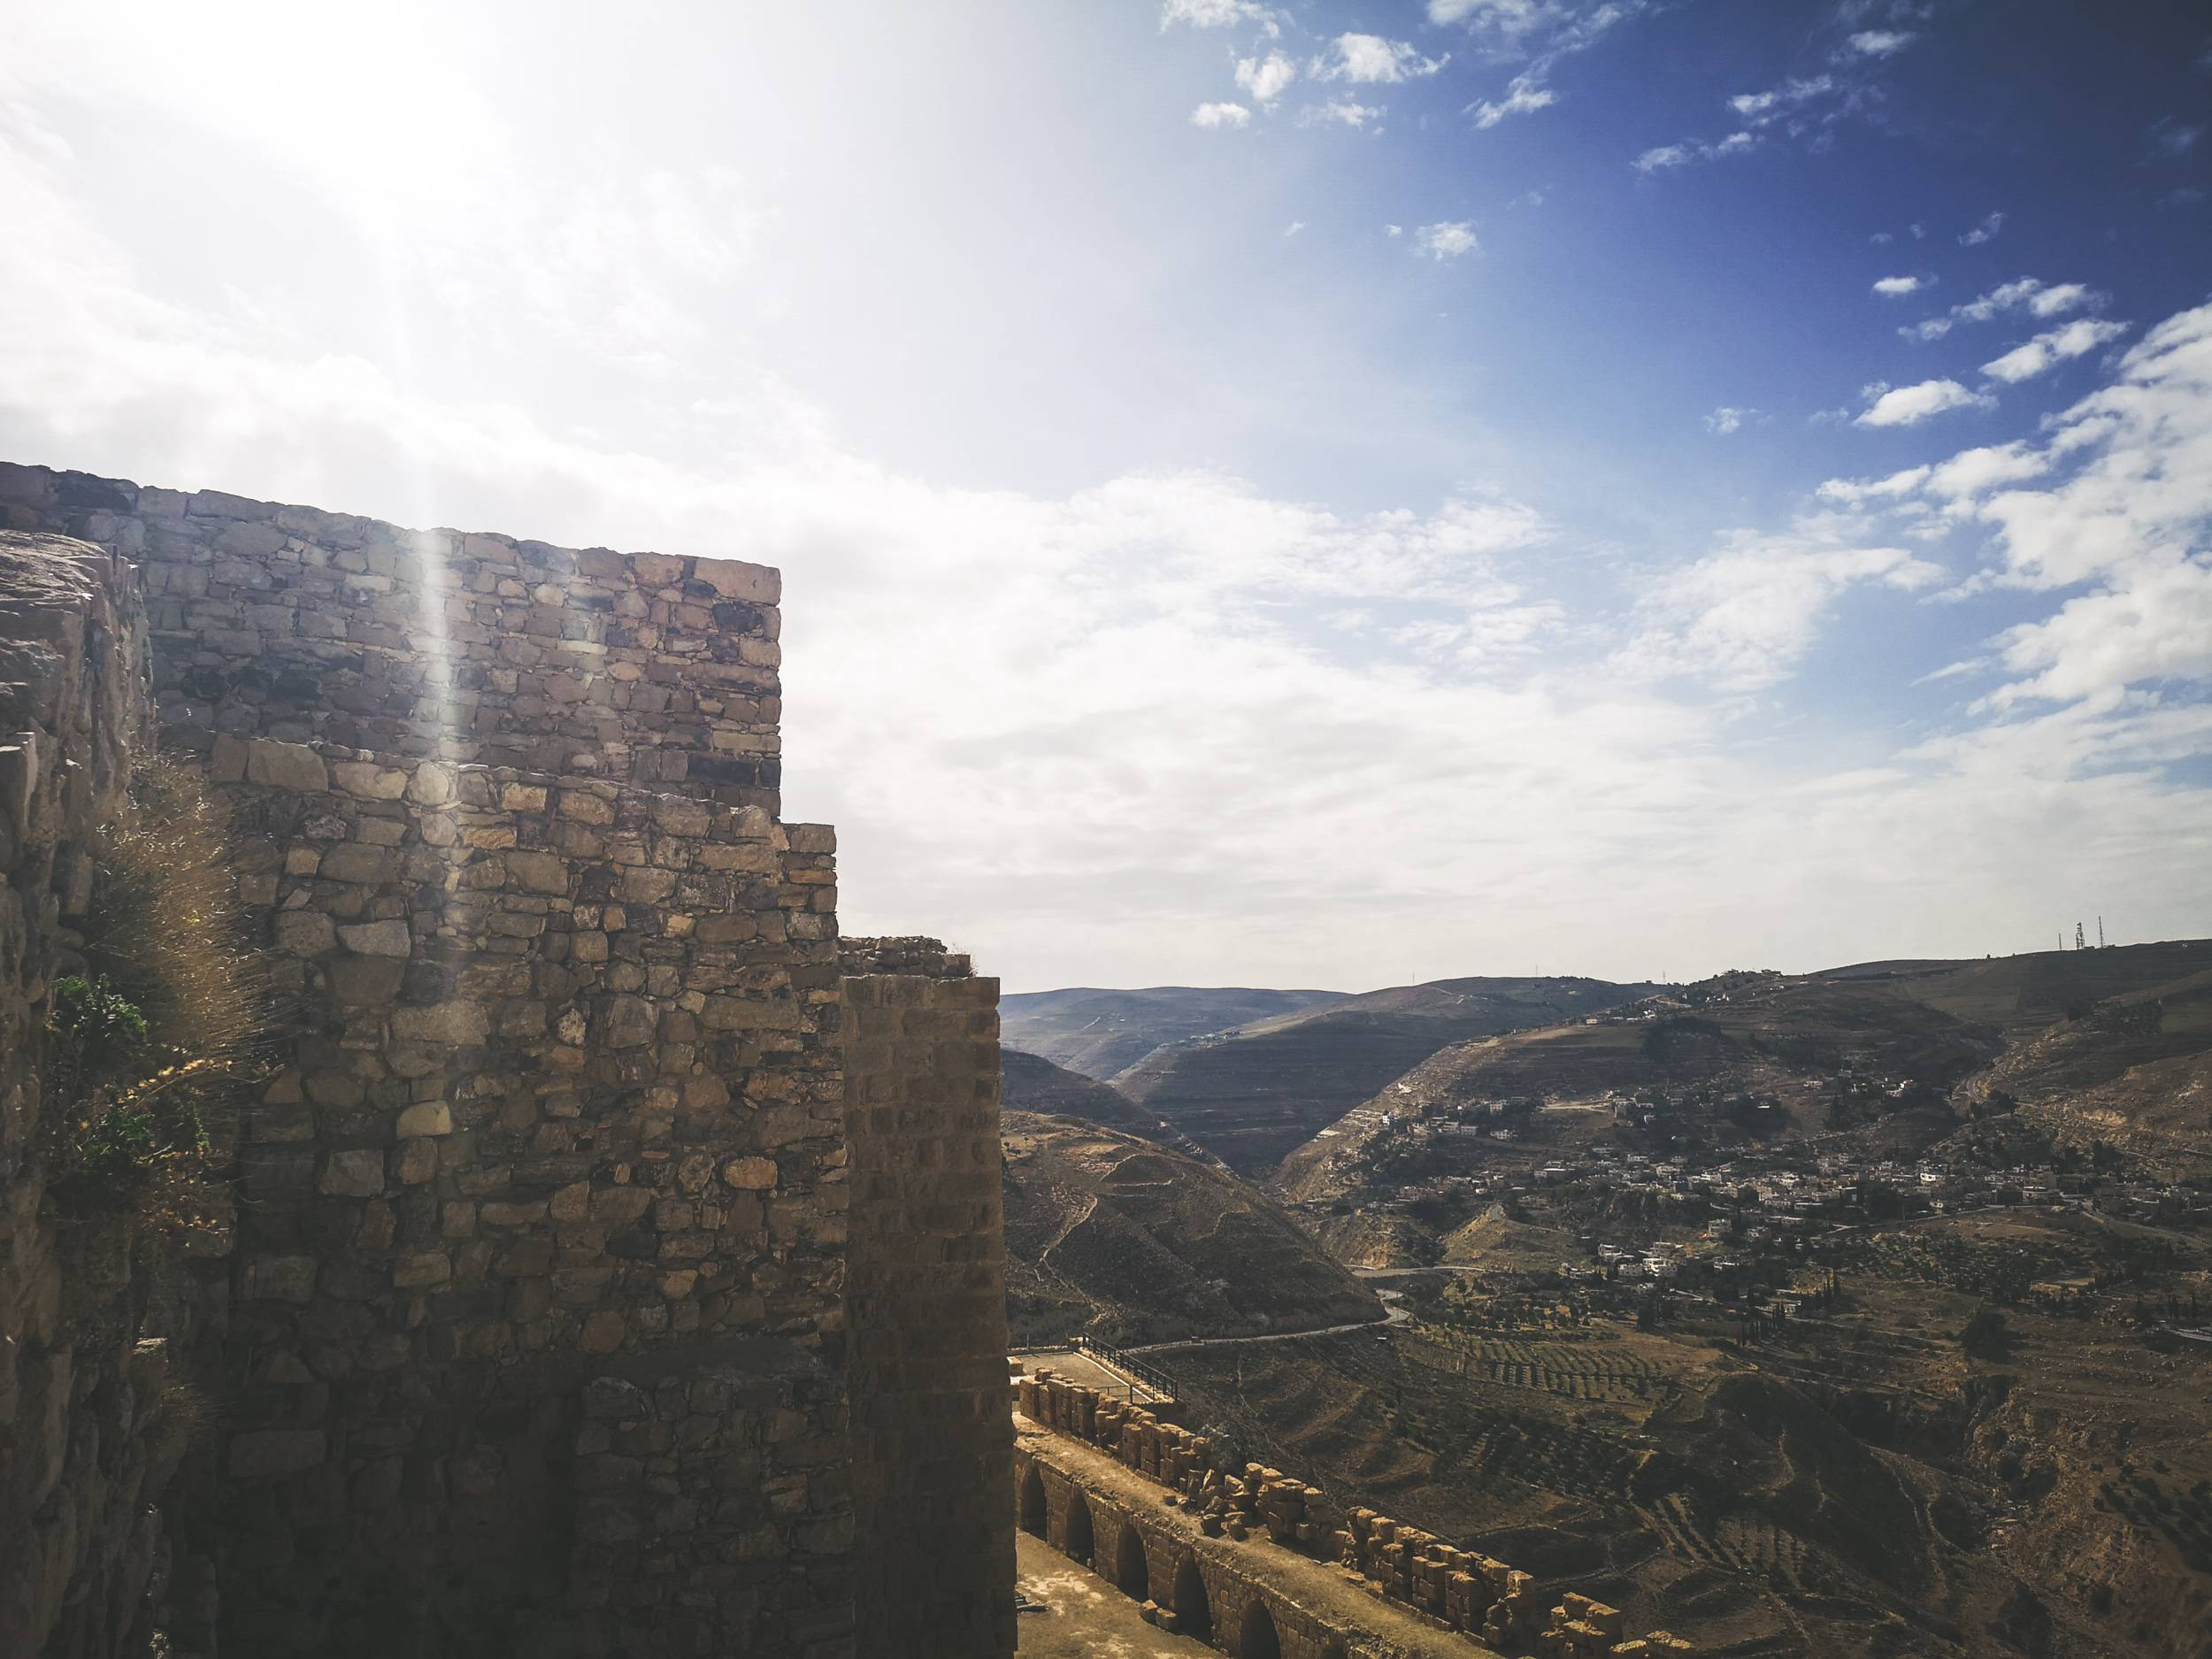 Even if you don't have time to visit the Castle, driving by might be very rewarding as the best views of it could be taken only from afar. Photo by Alis Monte [CC BY-SA 4.0], via Connecting the Dots